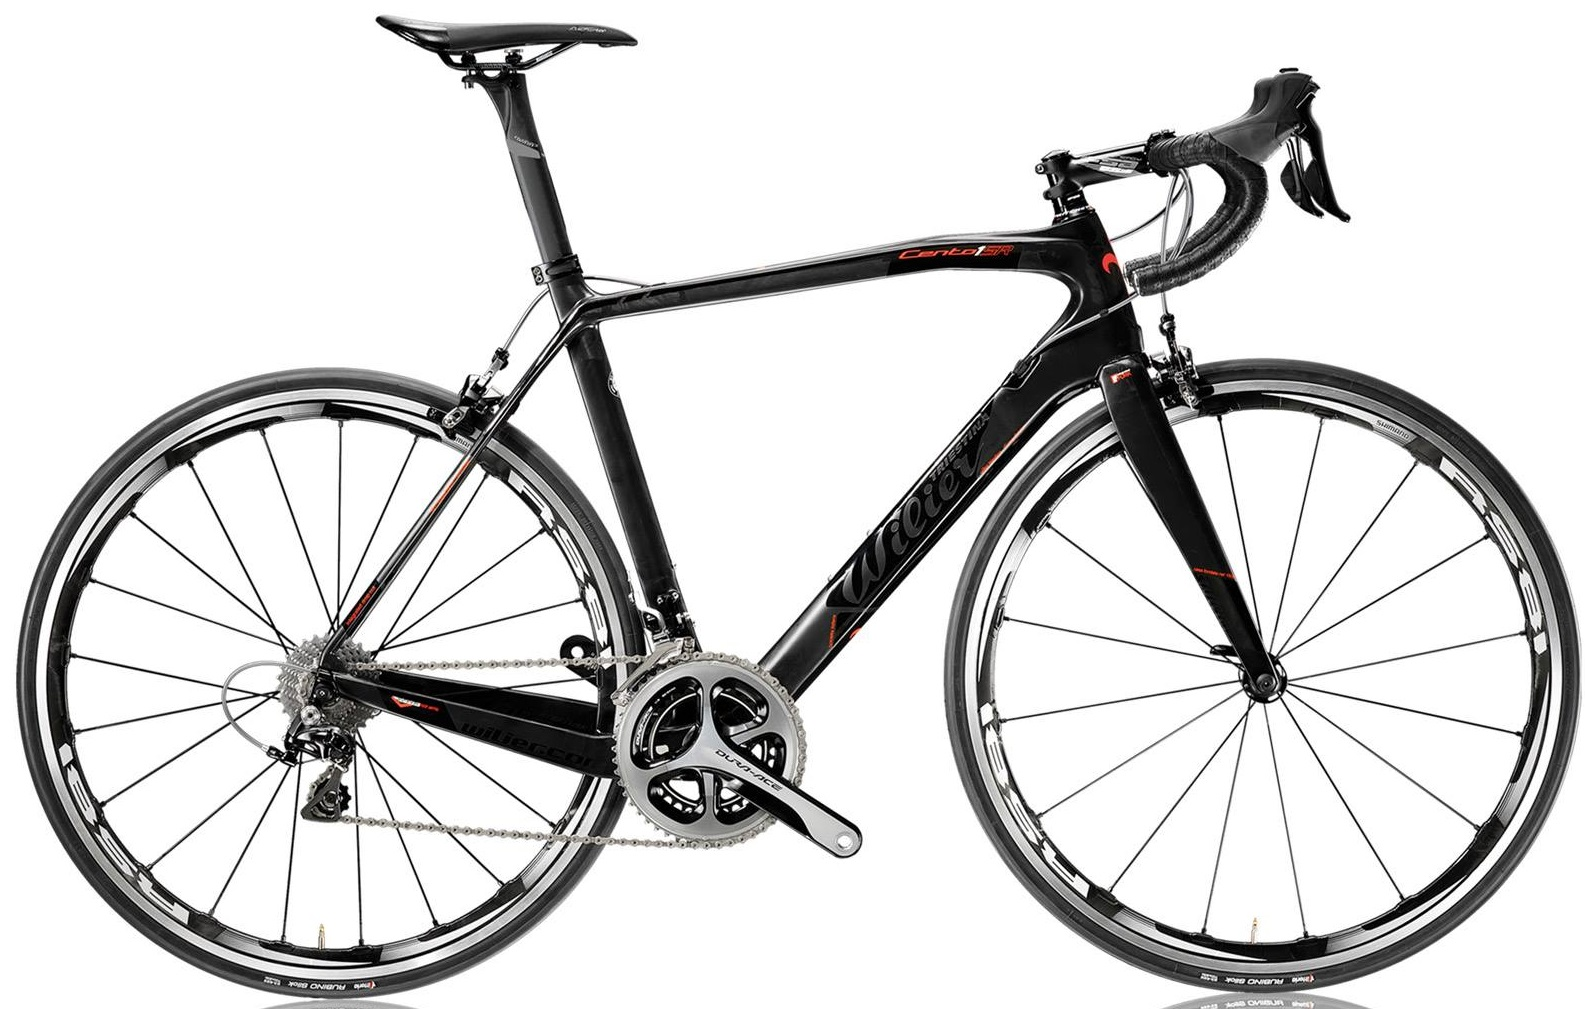 2015 Wilier Cento 1 SR black red dura aceneuroticarnutz2015 Wilier Cento 1 SR black red dura aceOlmo-Trentanove-Rahmenset_ grey red campy 2014